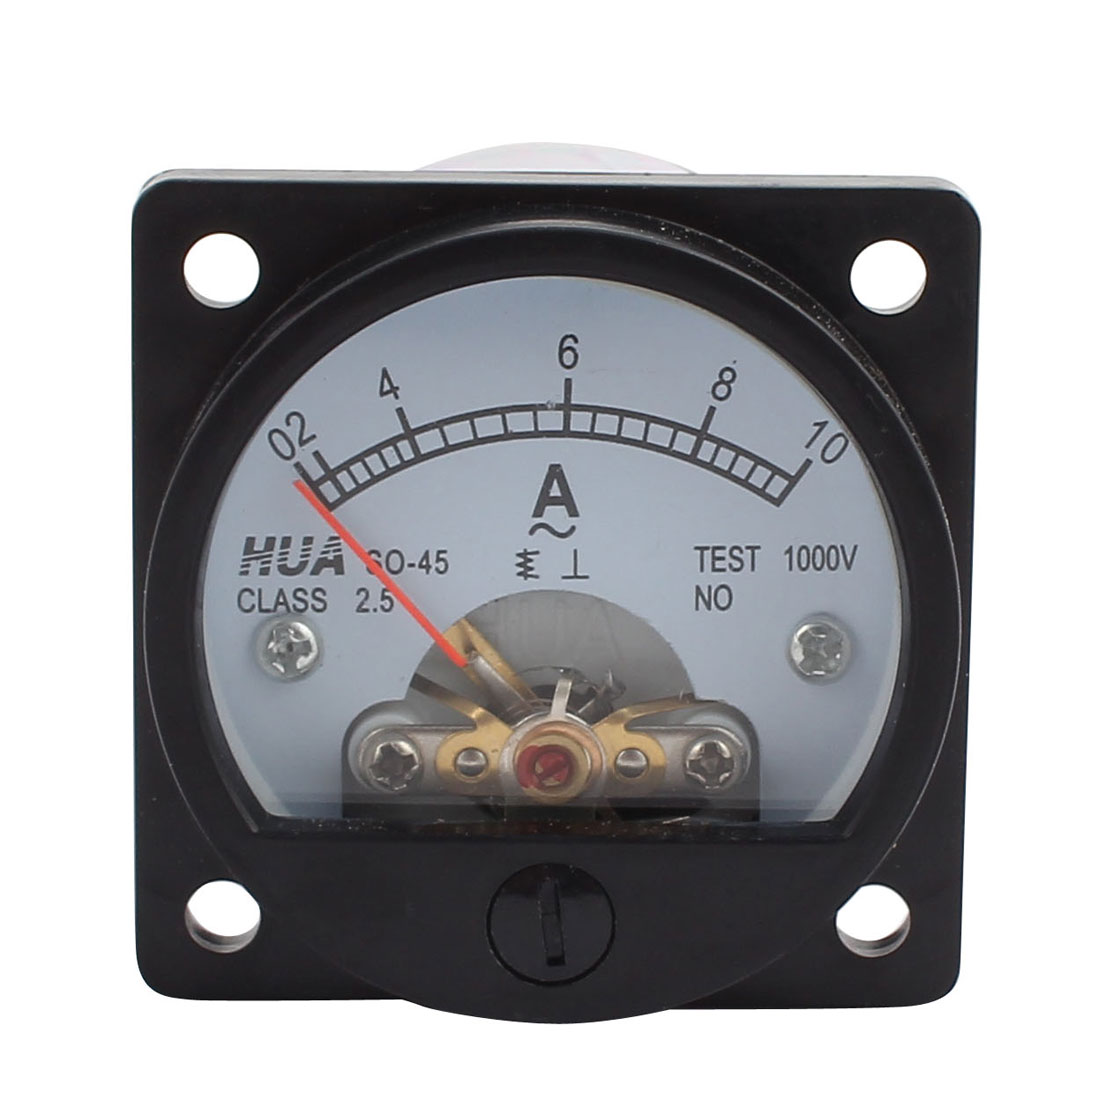 Ac Ammeter Panel Meter : Uxcell class accuracy ac a round analog panel